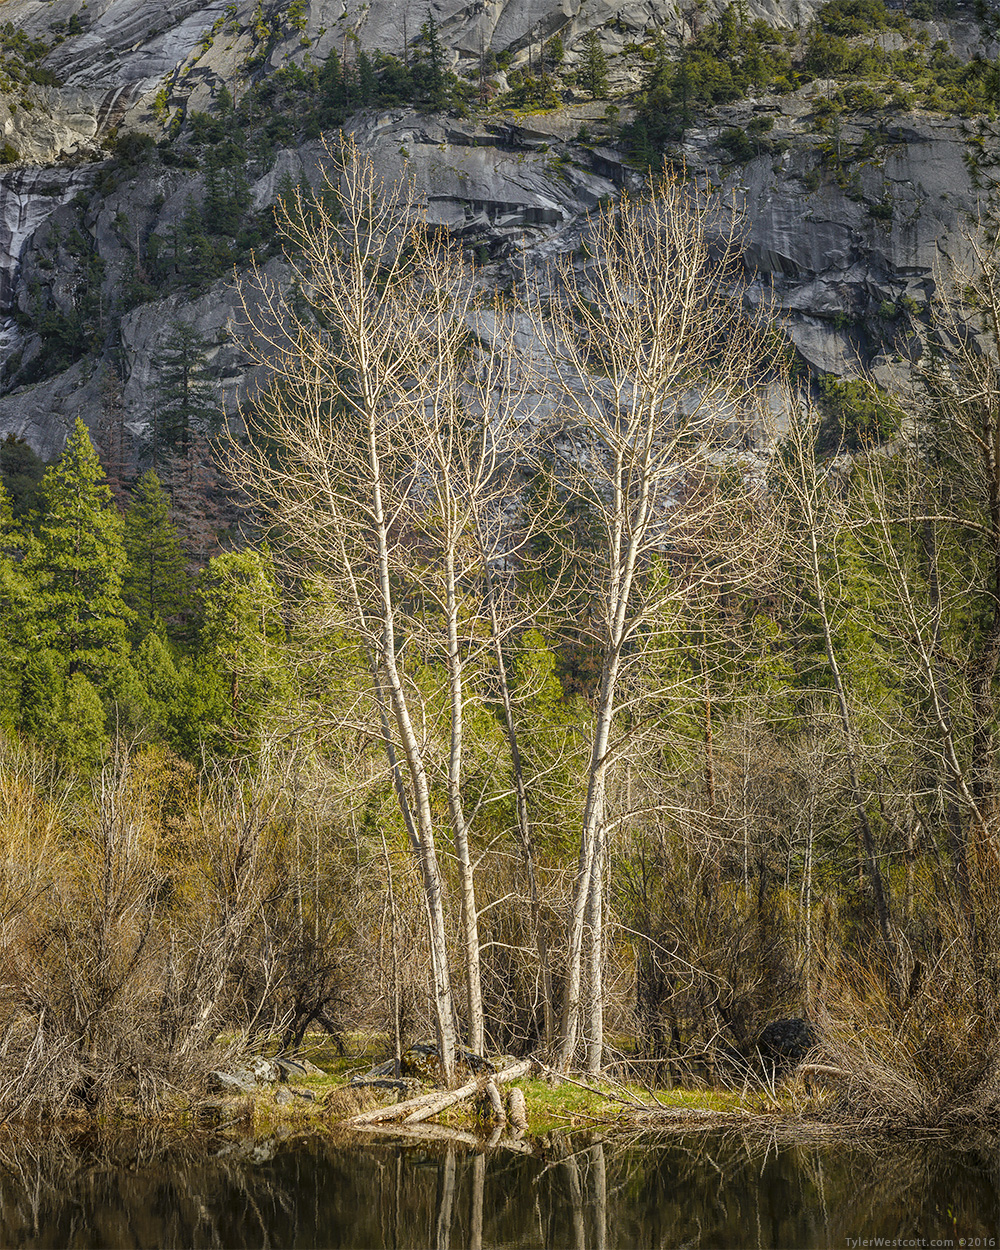 Merced River, Spring, Yosemite National Park